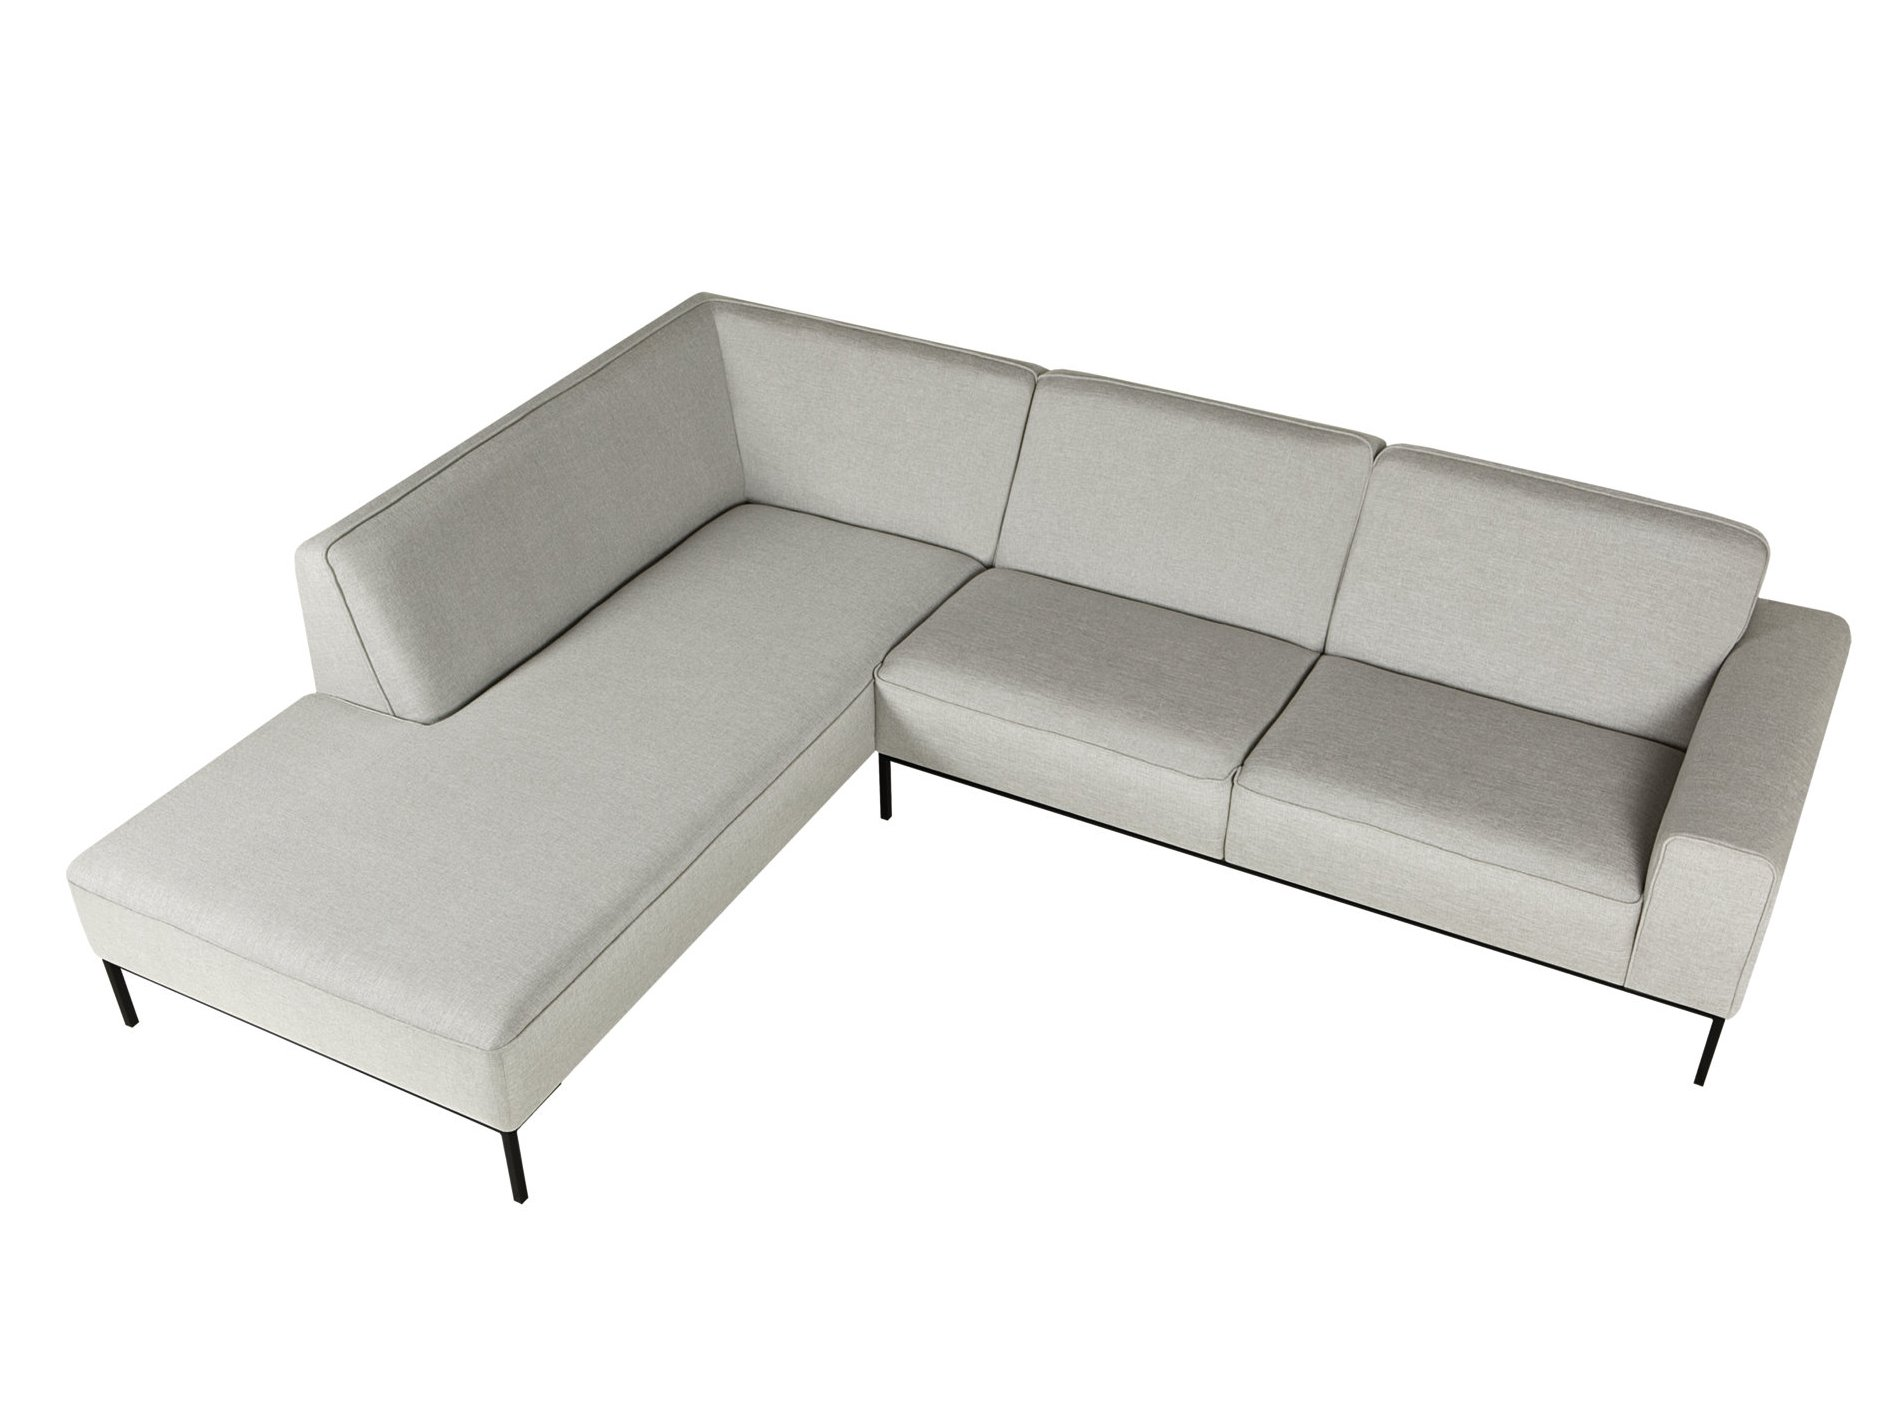 Ville sofa with chaise longue ville collection by sits for Chaise longue furniture